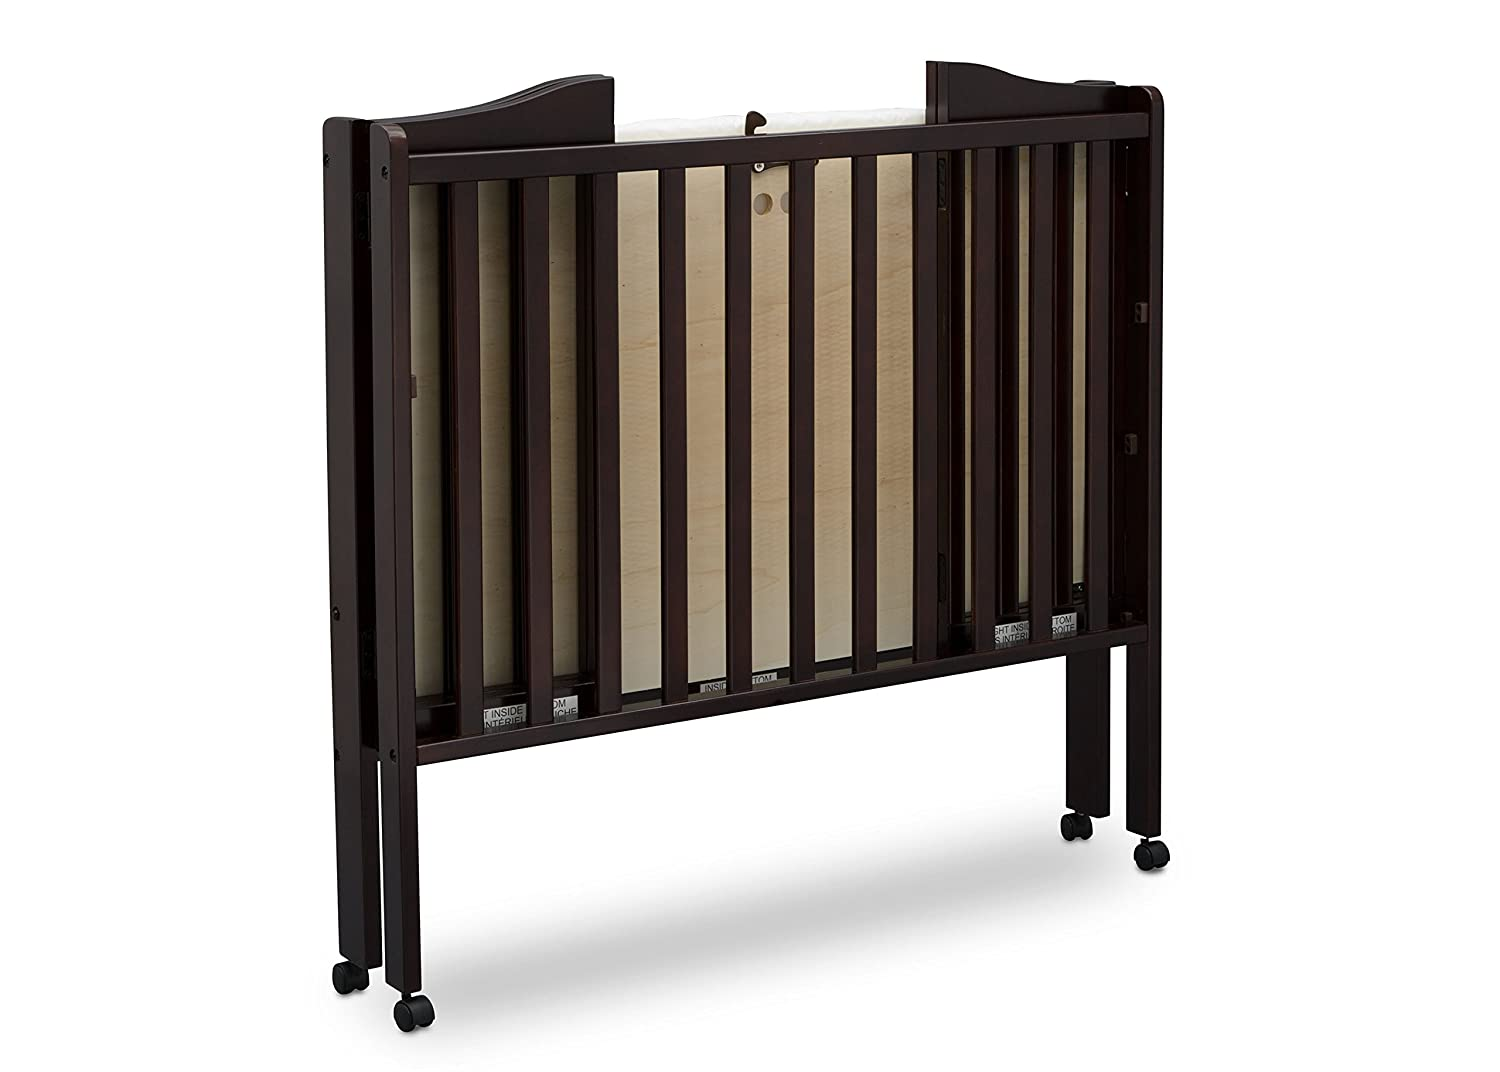 Amazon.com : Delta Children Folding Portable Mini Baby Crib with Mattress, Dark Chocolate : Baby